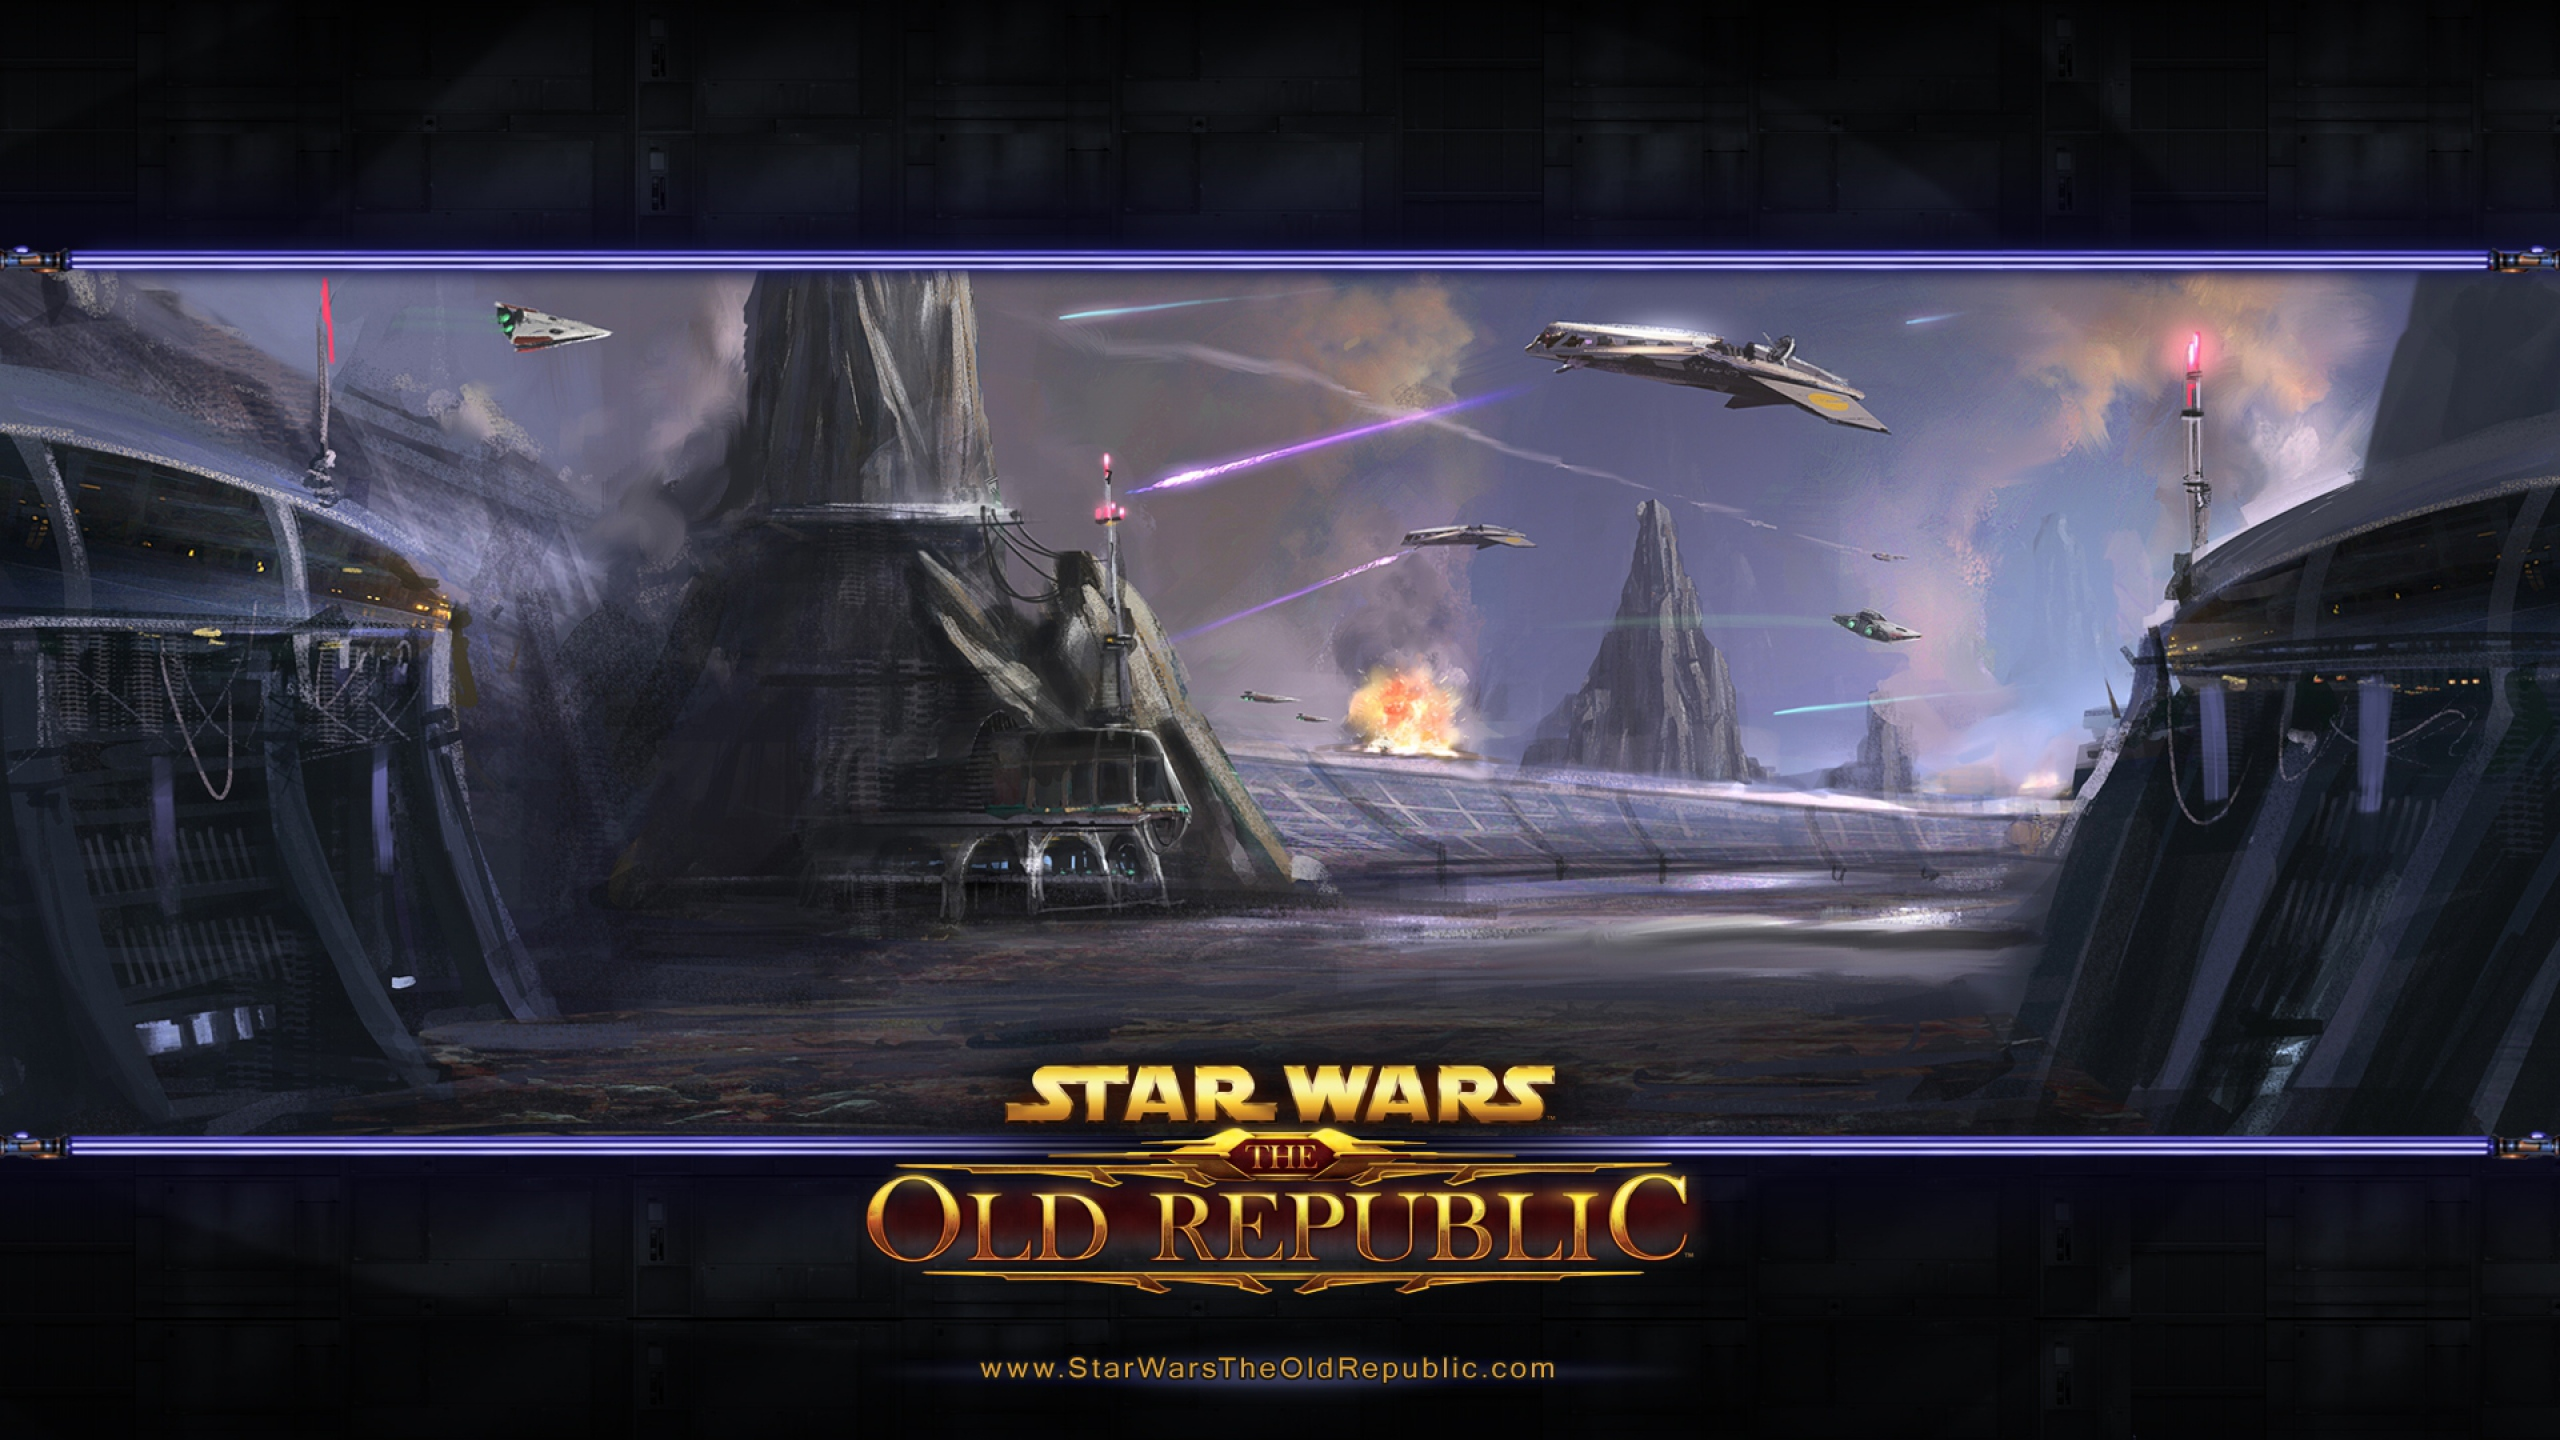 Star Wars The Old Republic Wallpapers Pictures Images 2560x1440